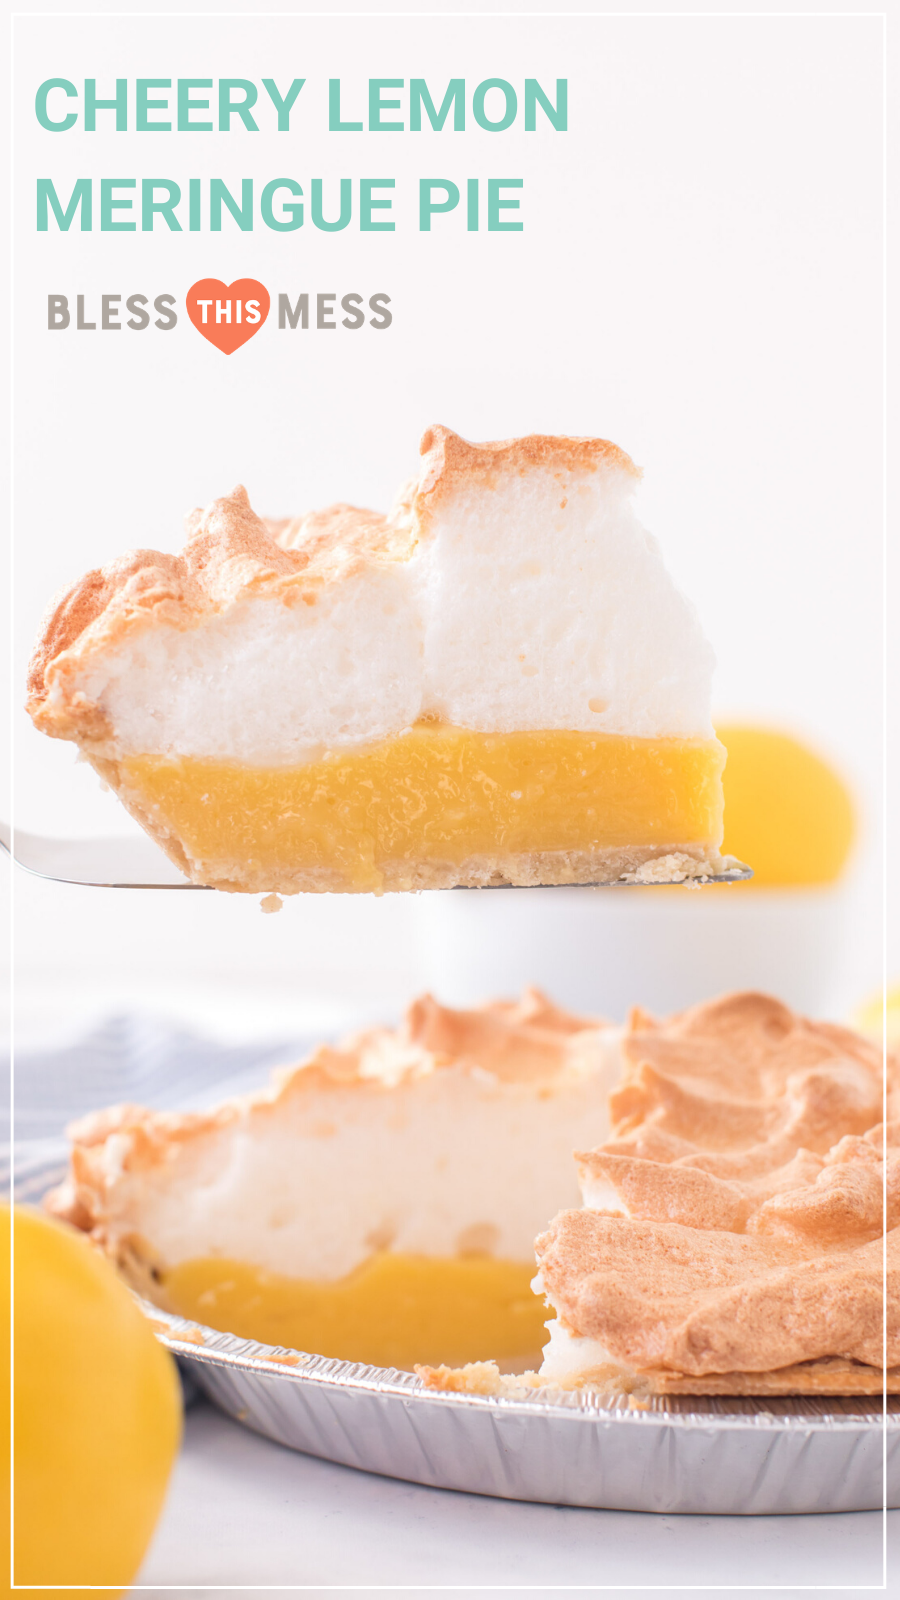 My bright and cheery lemon meringue pie has a tart, lemony custard inside with the fluffiest meringue topping. It's a perfect spring and summer time dessert! #lemonmeringuepie #homemadelemonmeringuepie #lemonmeringuepierecipe #lemonpie #pie #pierecipe #homemadepie